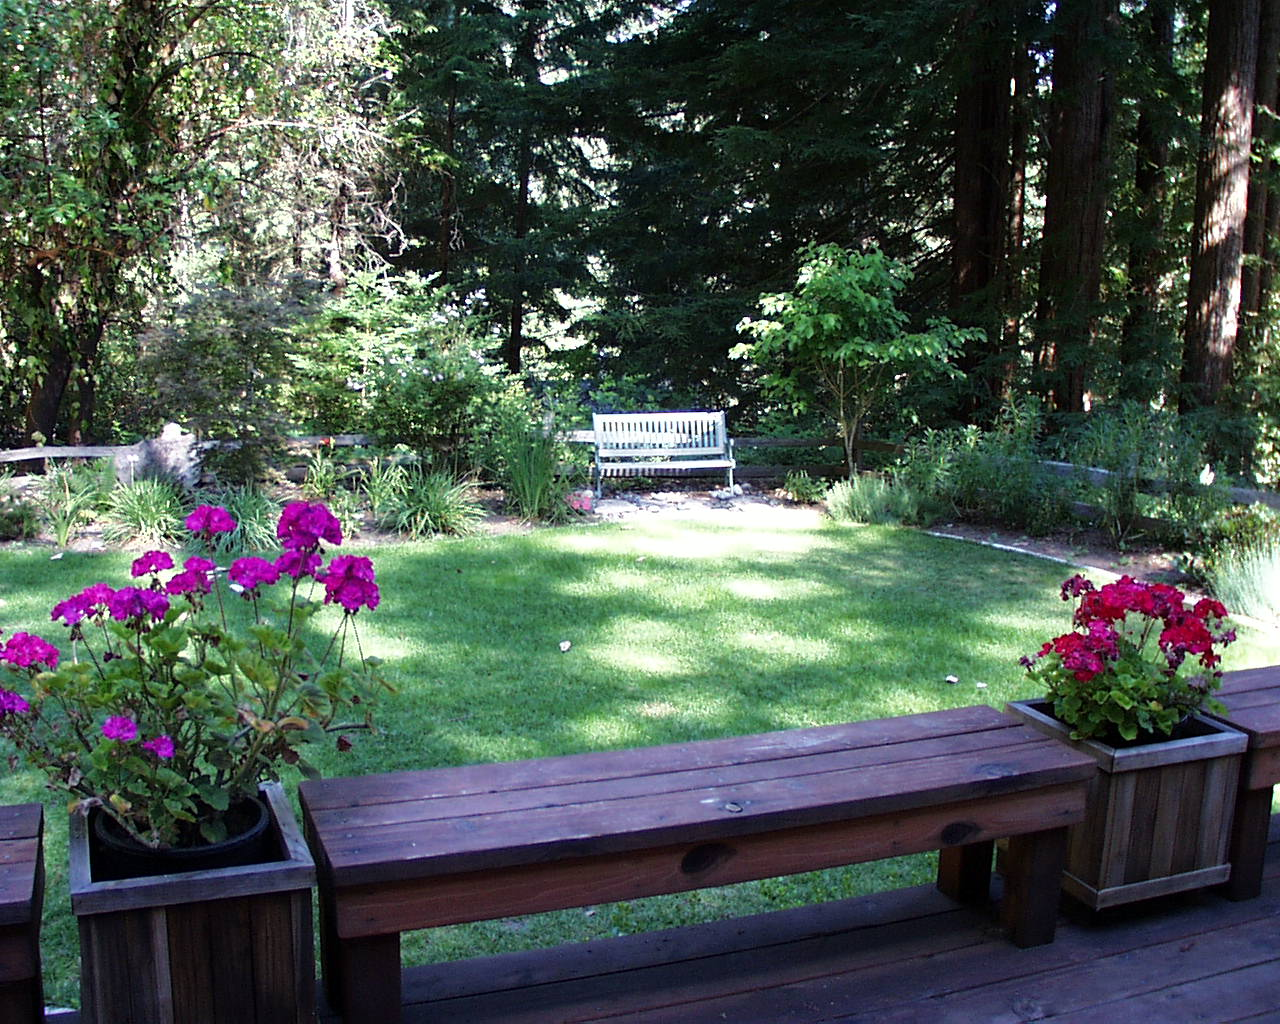 Spacious Backyard with Red Flowers on Interesting Planter plus Wood Chair